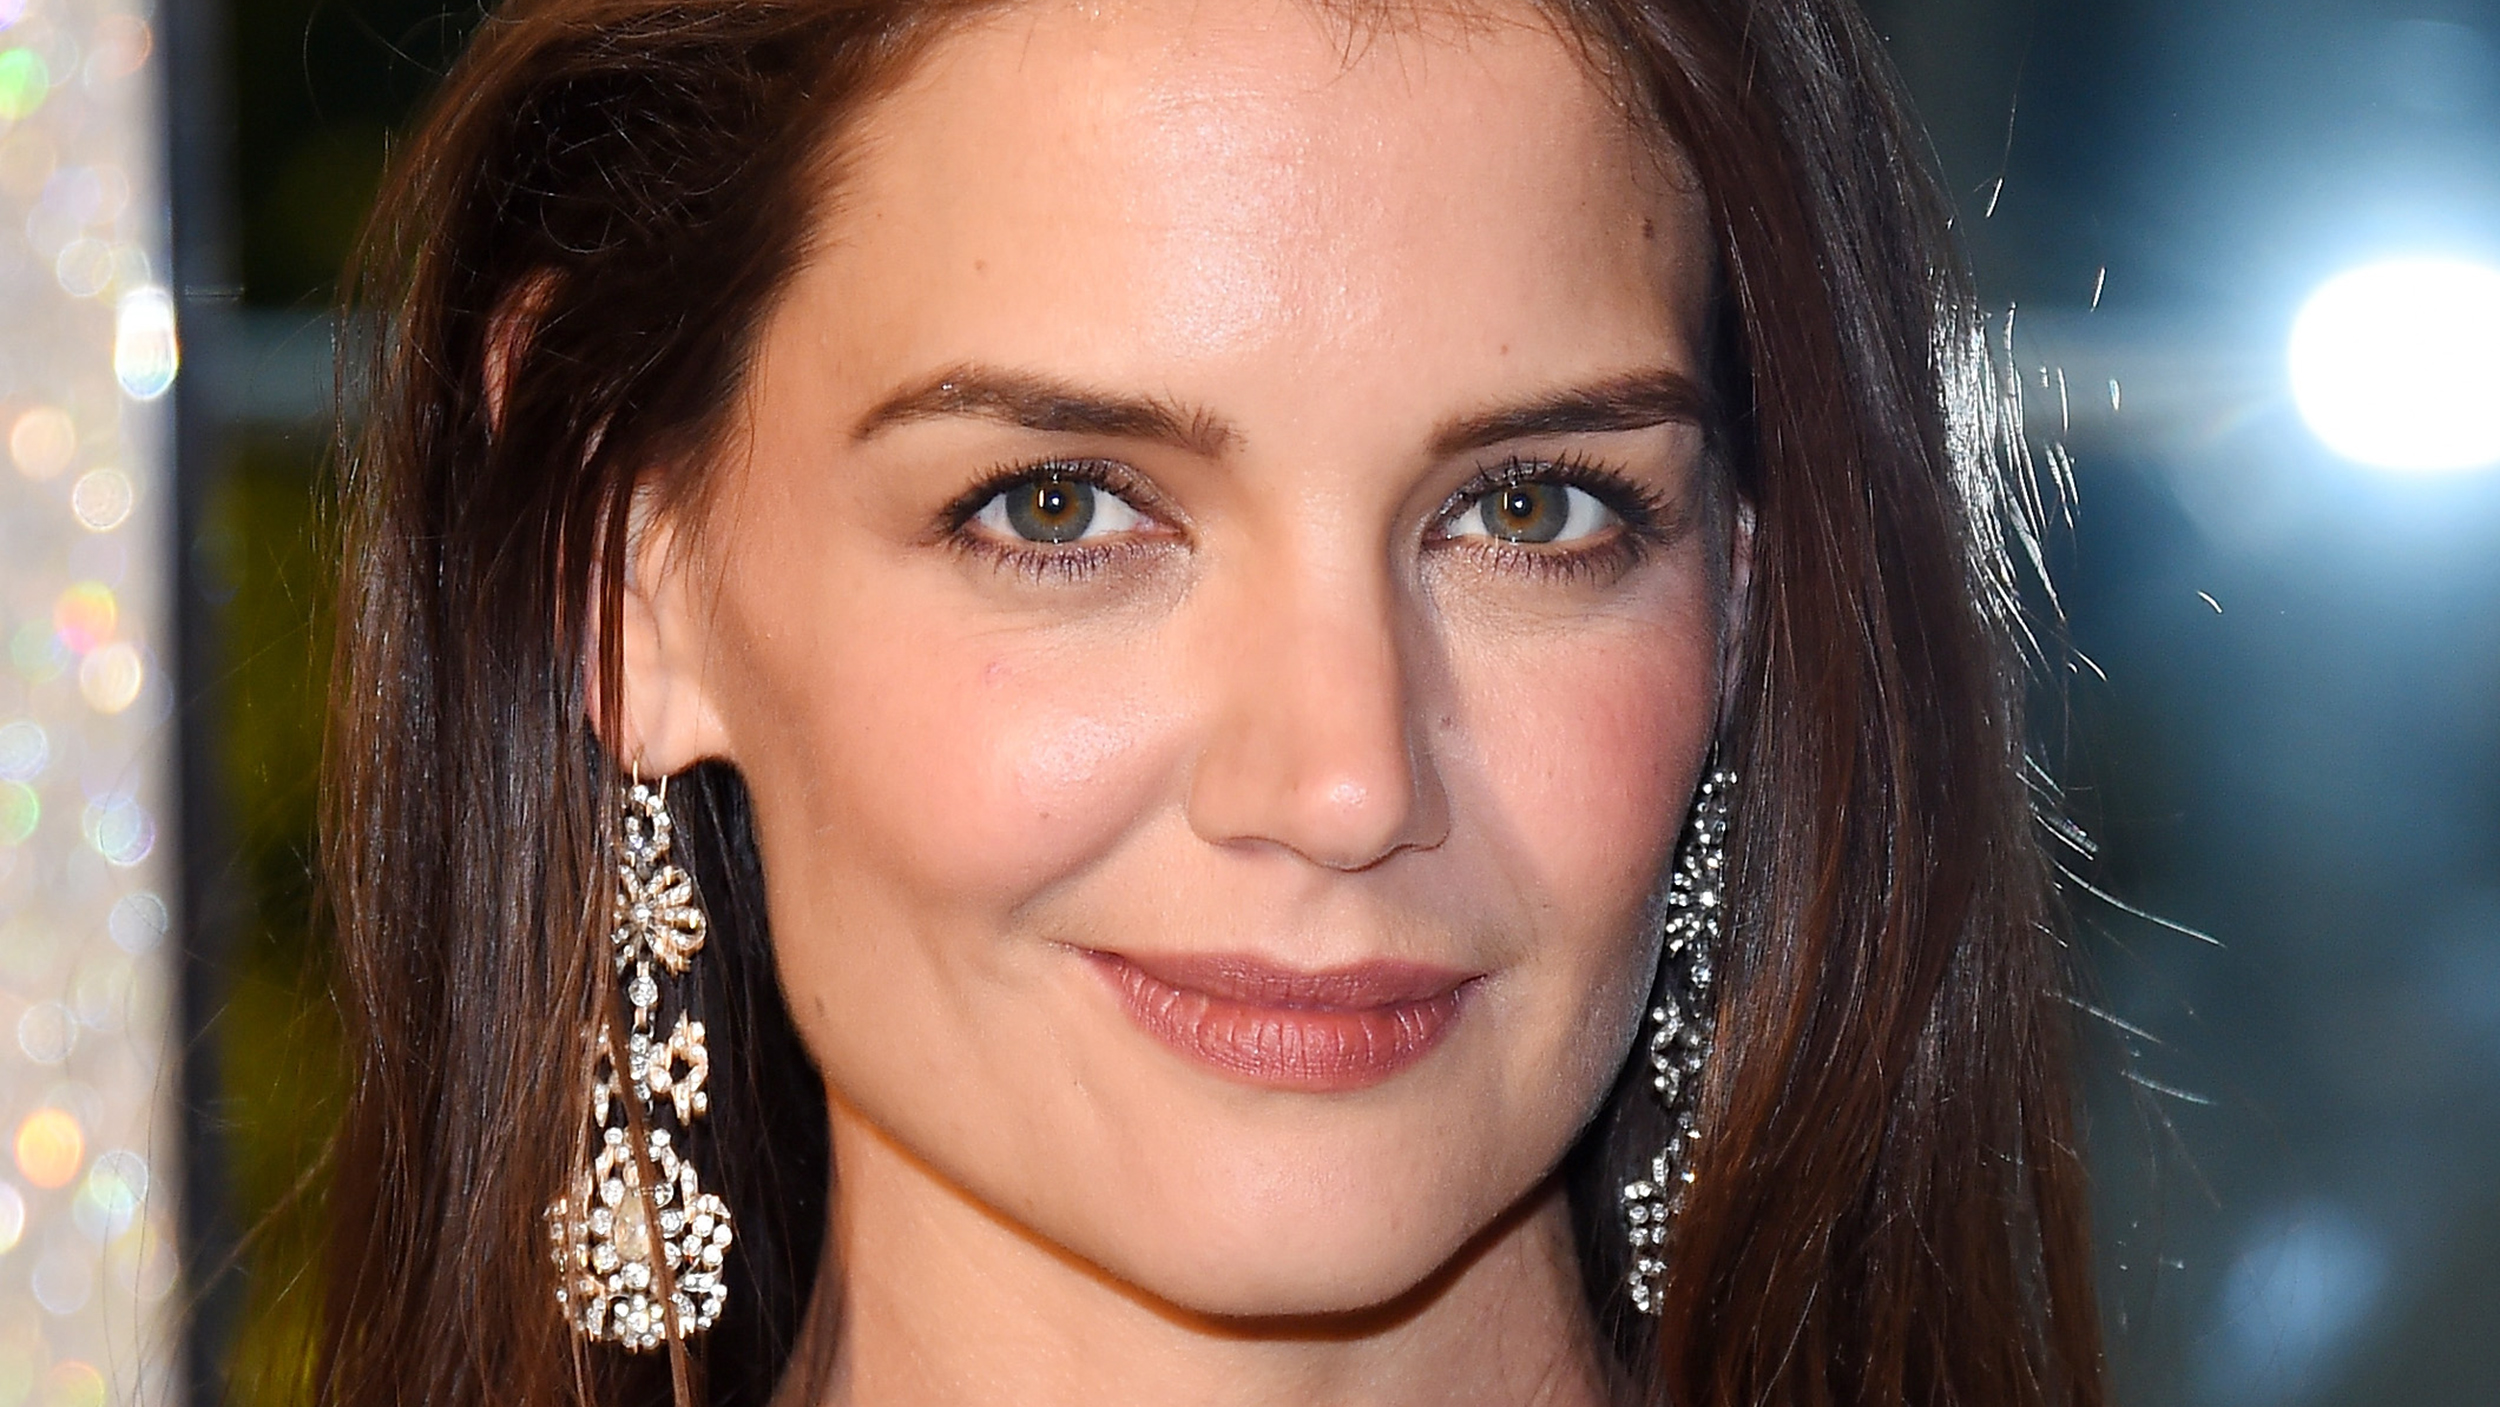 Does katie holmes have herpes